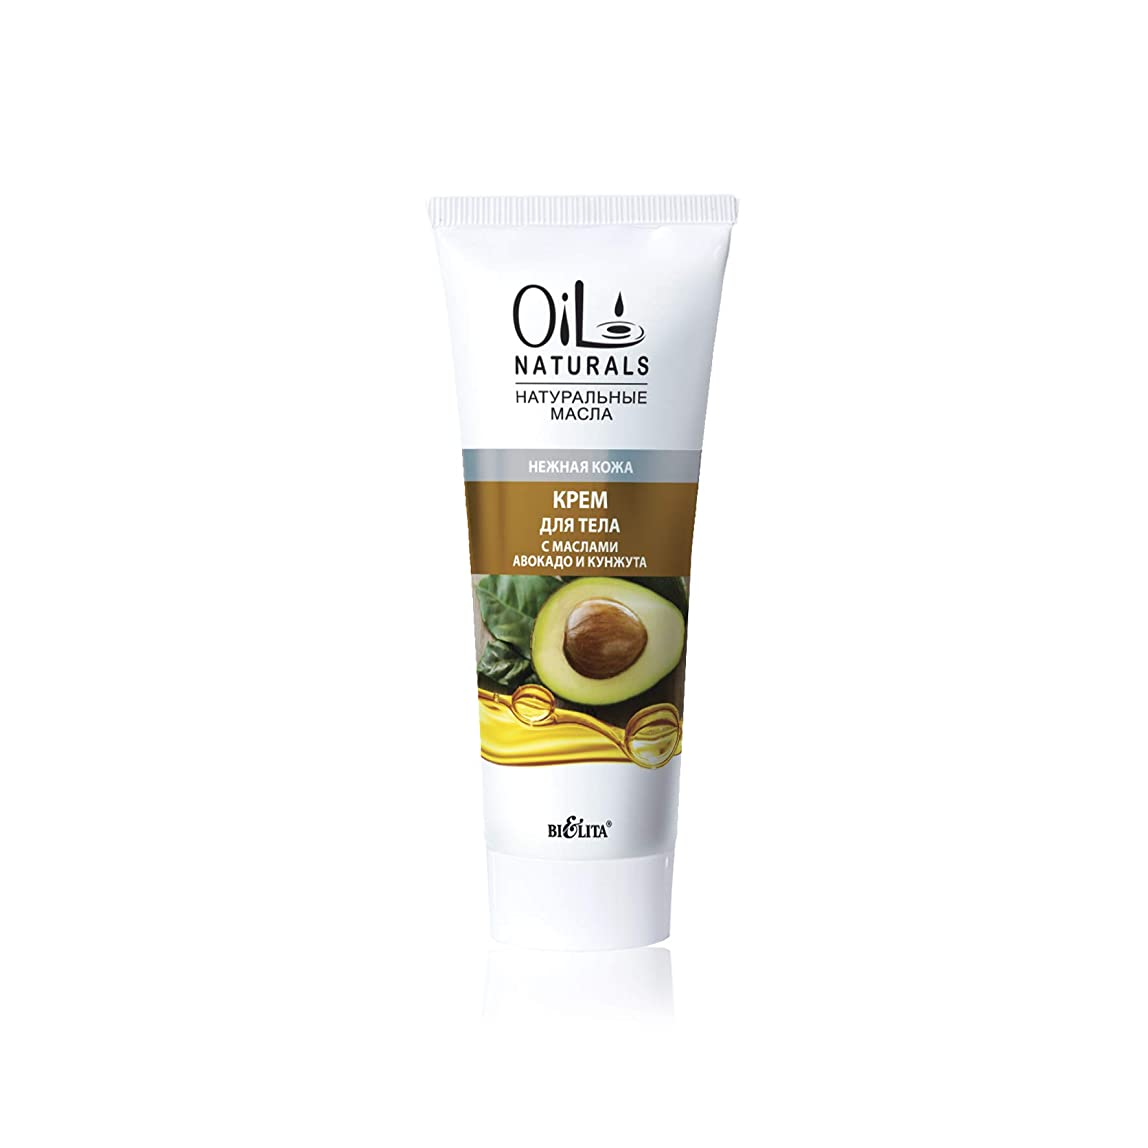 スポンジ布同時Bielita & Vitex | Oil Naturals Line | Moisturizing Body Cream for Delicate Skin, 200 ml | Avocado Oil, Silk Proteins, Sesame Oil, Vitamins